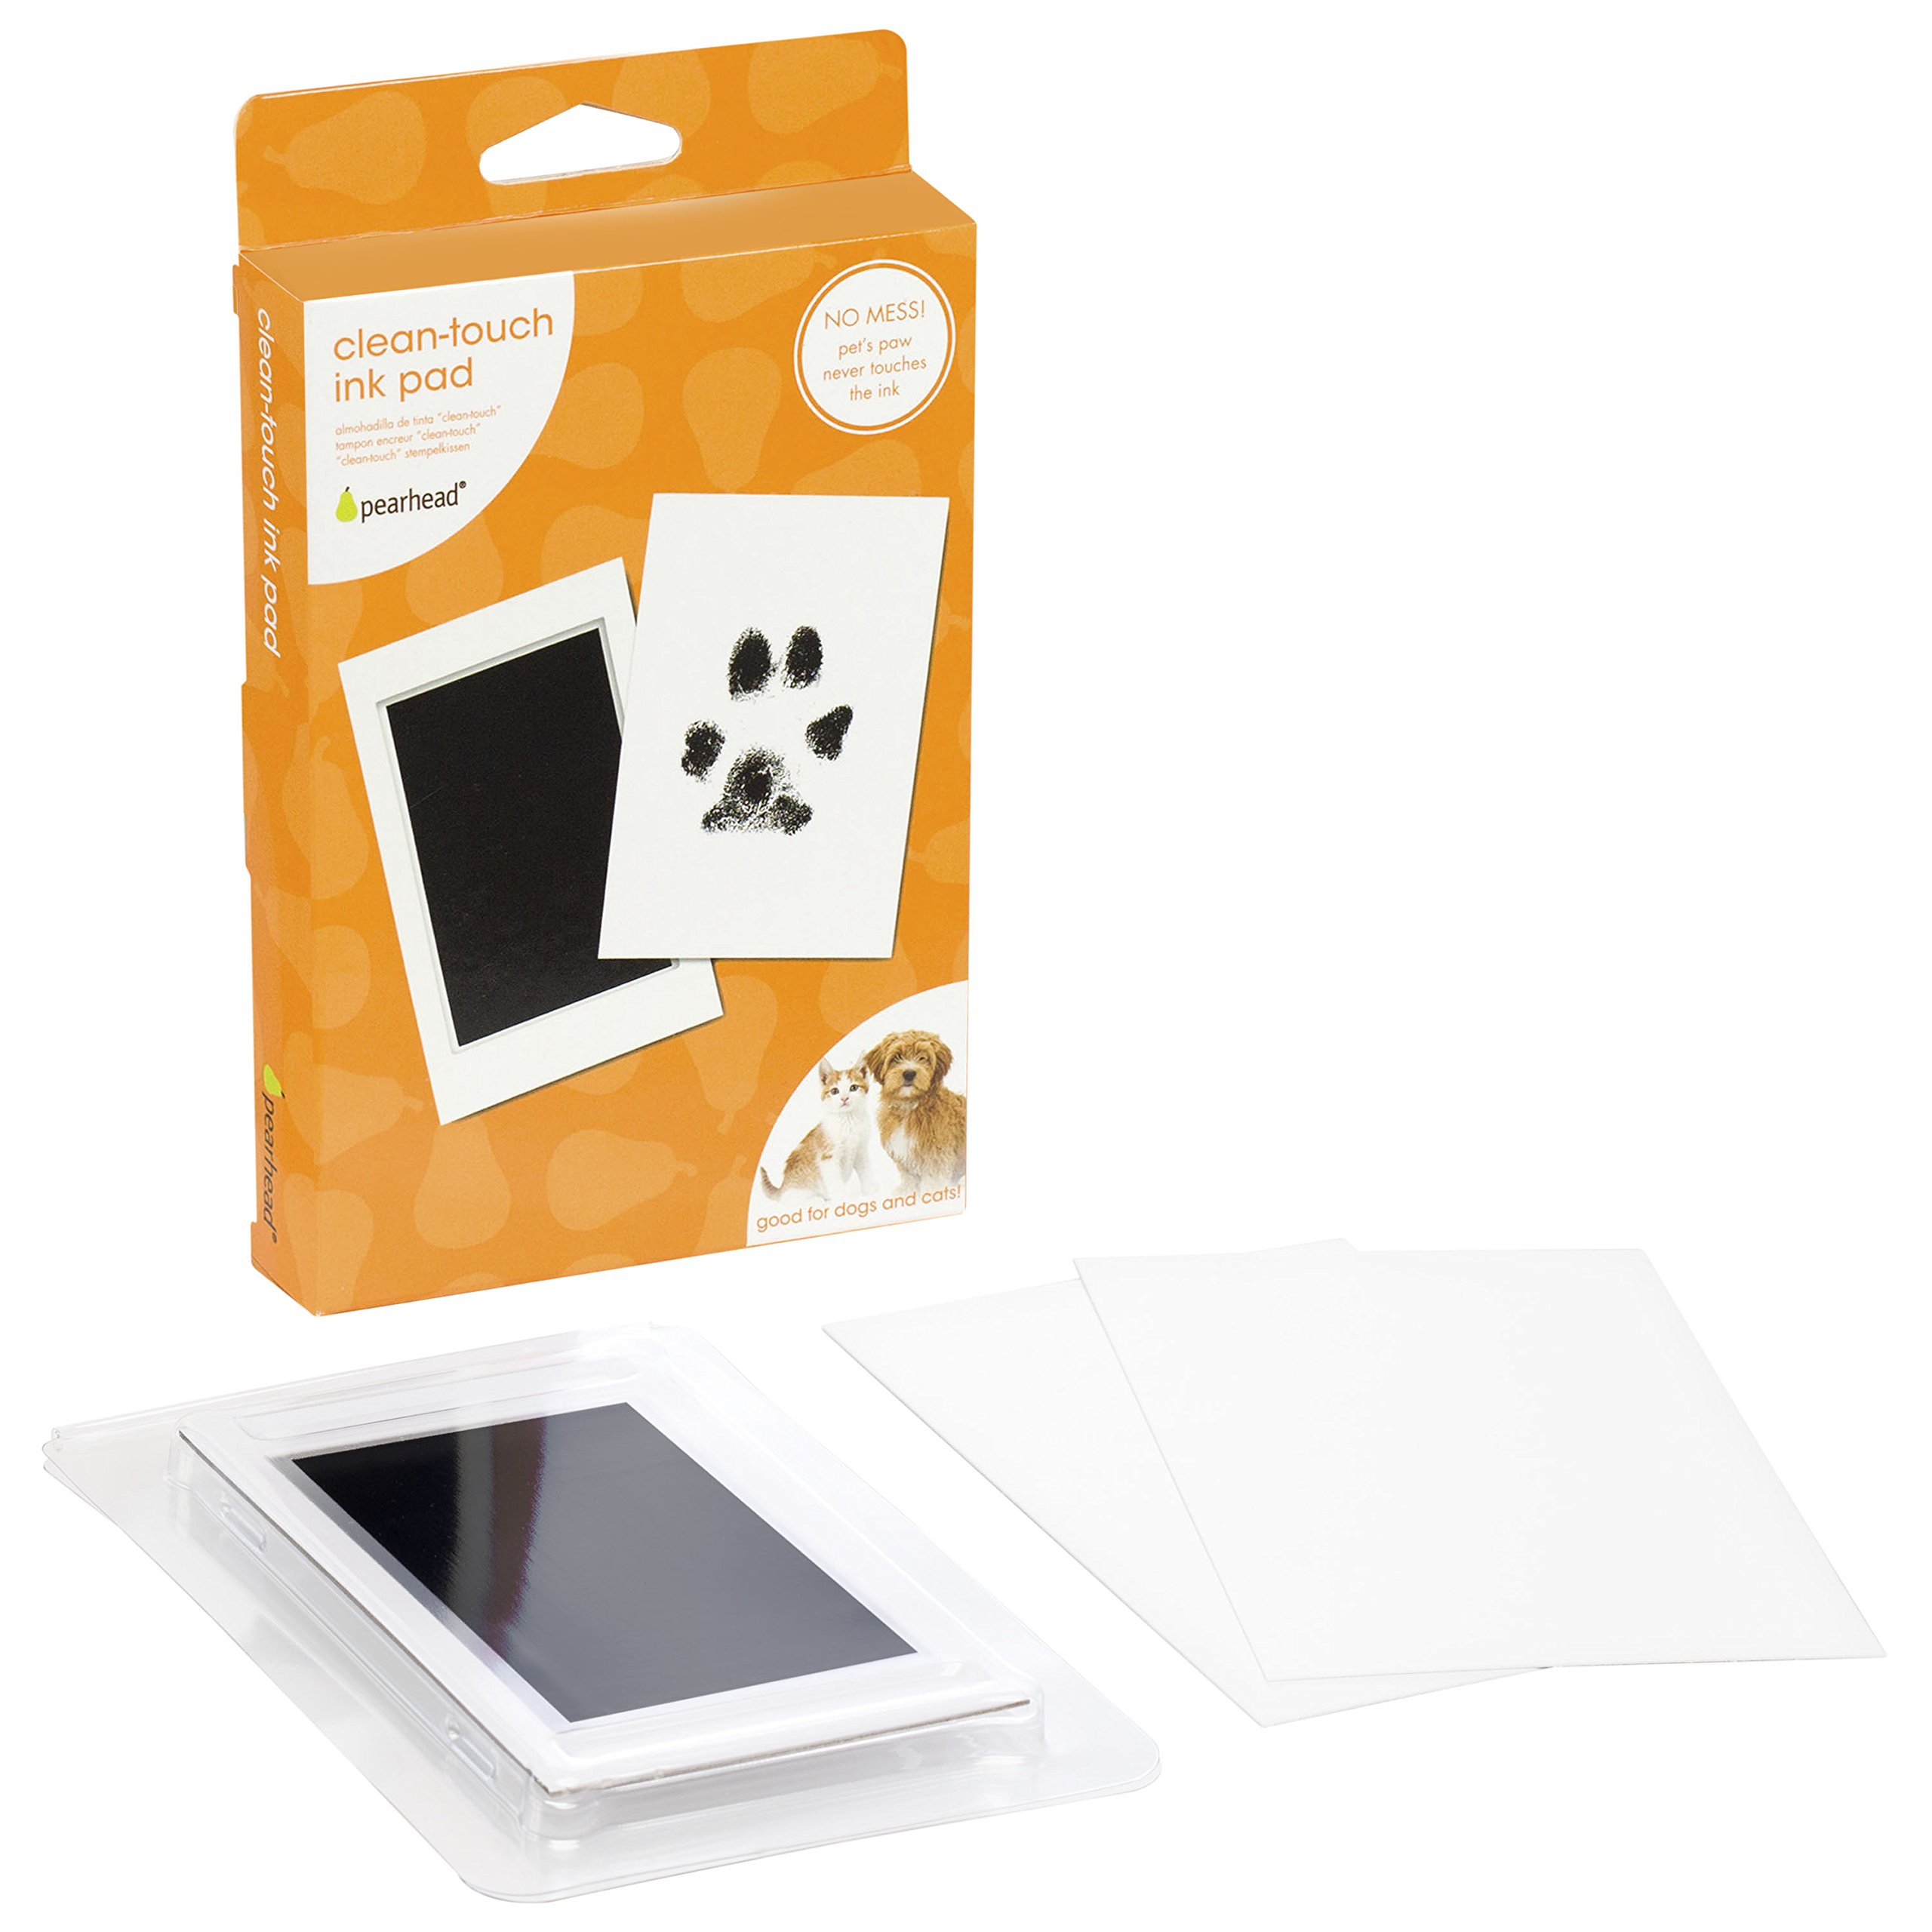 Pearhead Pet Paw Print Clean Touch Ink Pad and